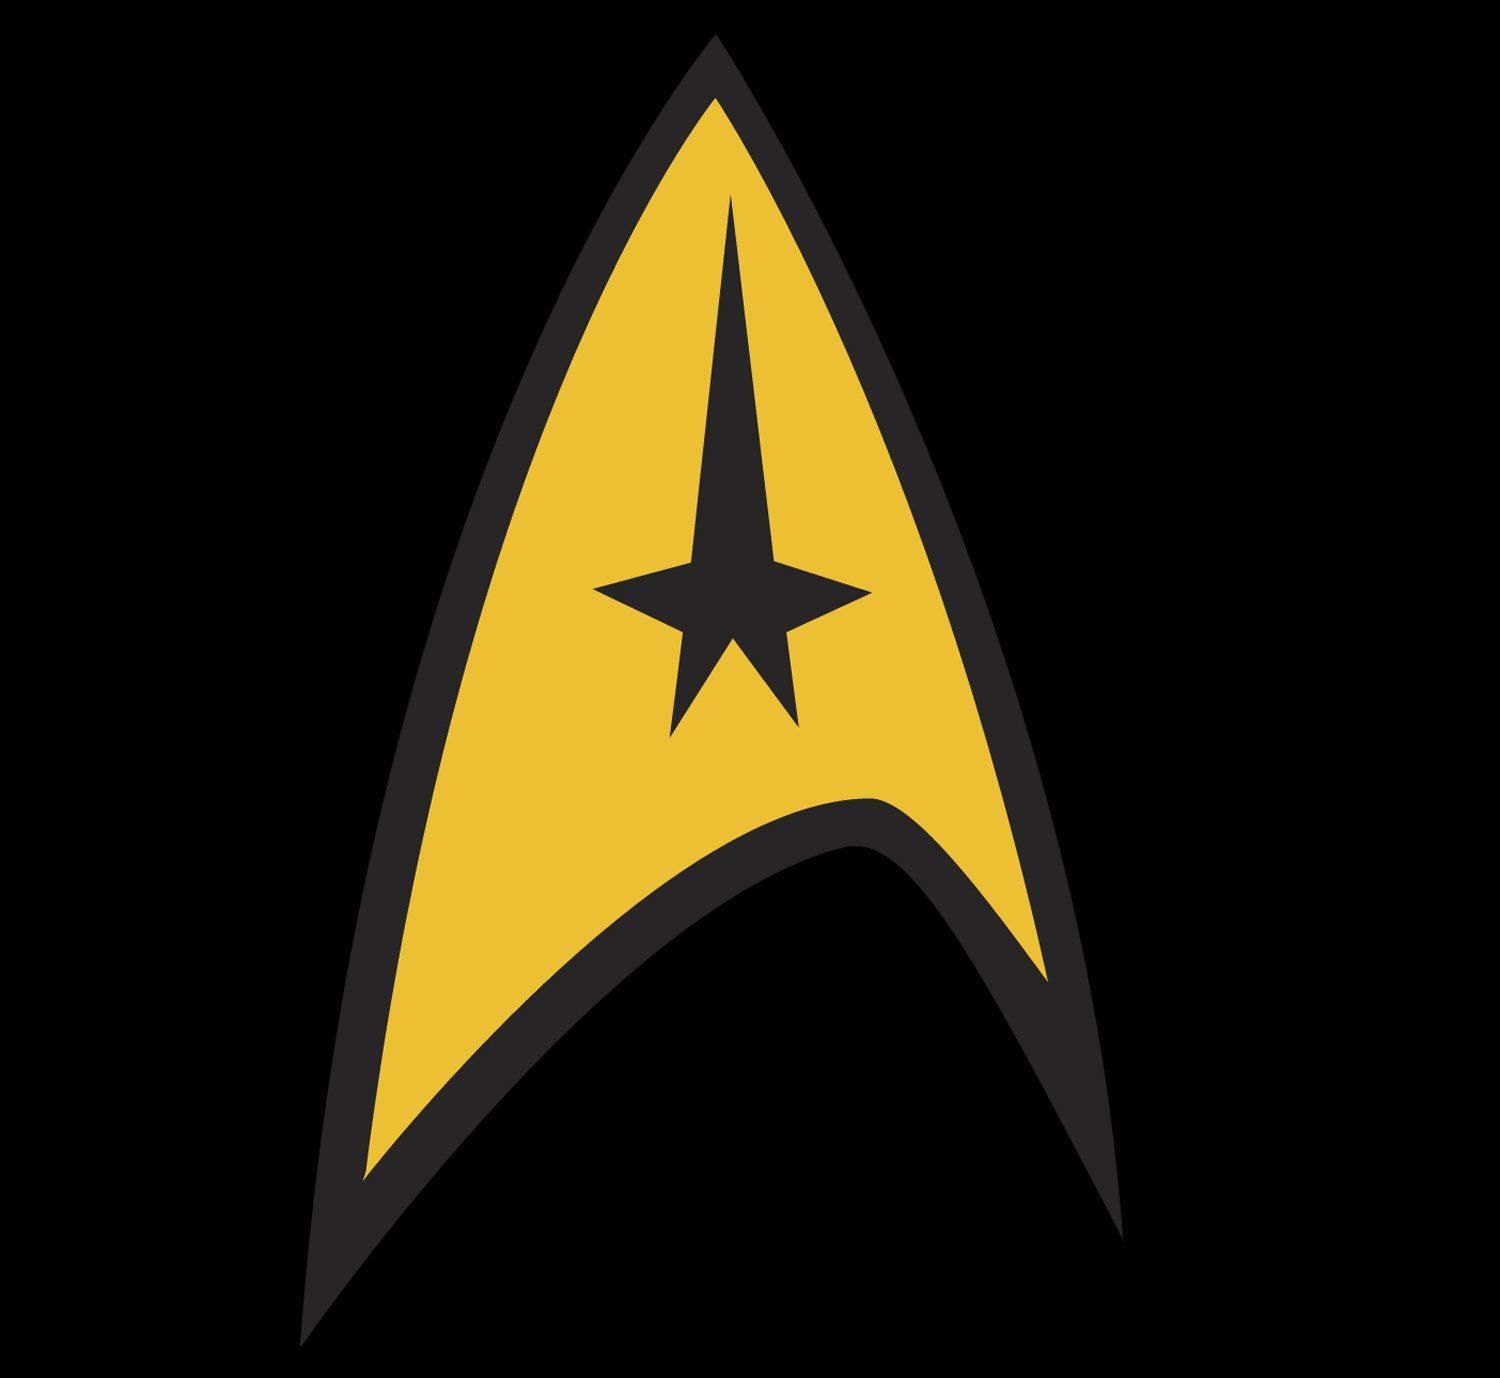 Star Trek Logo, Star Trek Symbol, Meaning, History and ...